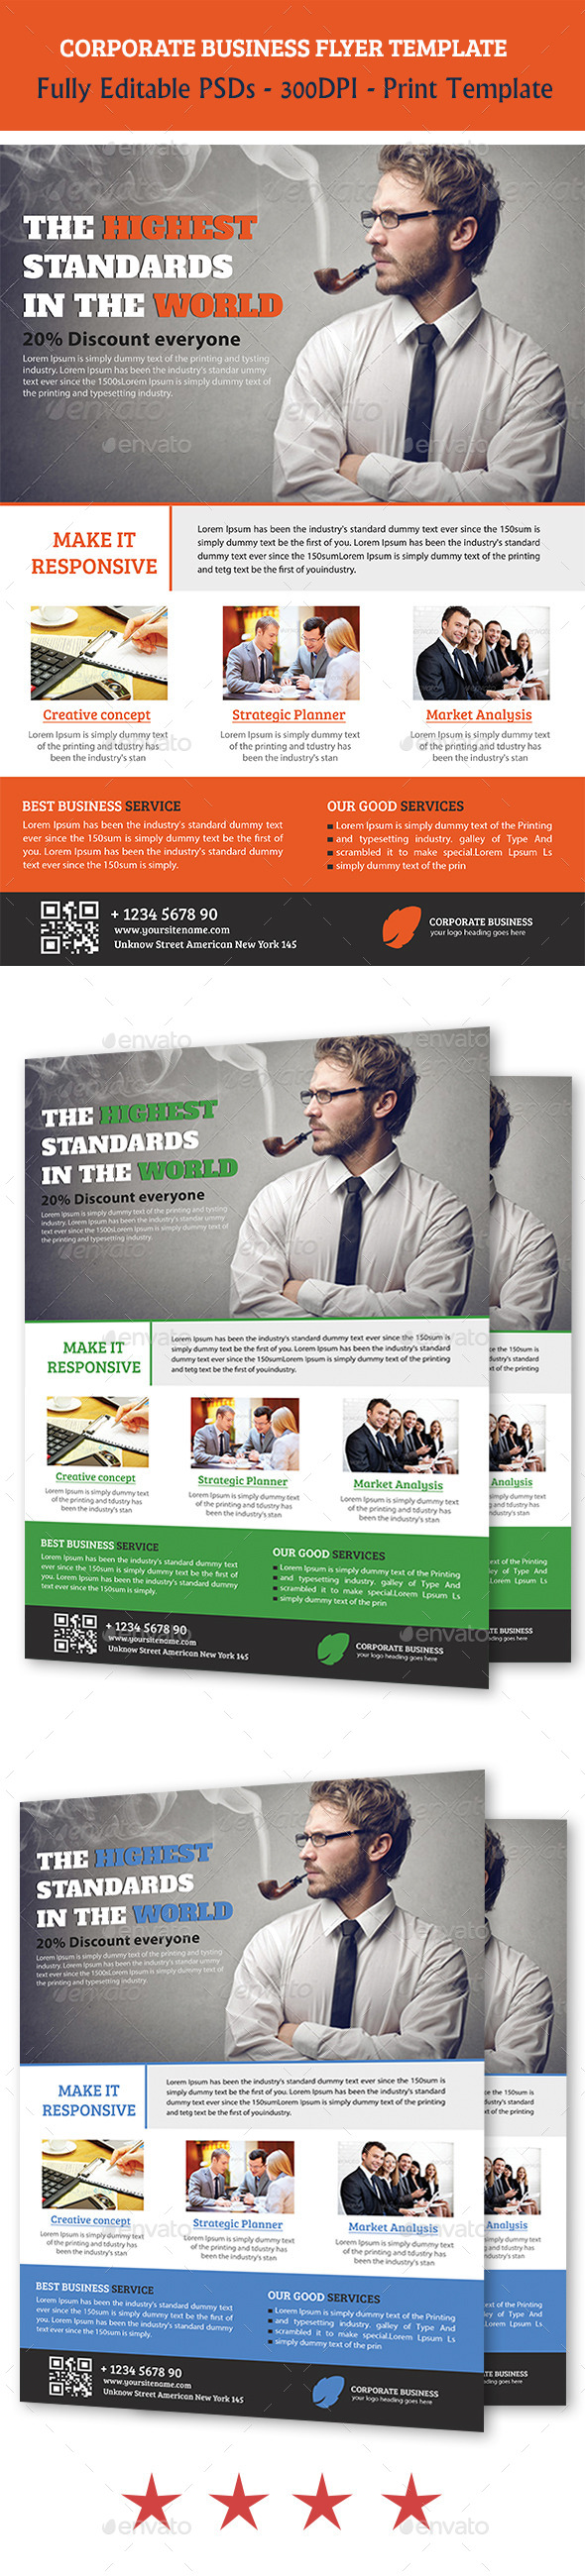 GraphicRiver Corporate Business Flyer Temp 11198786